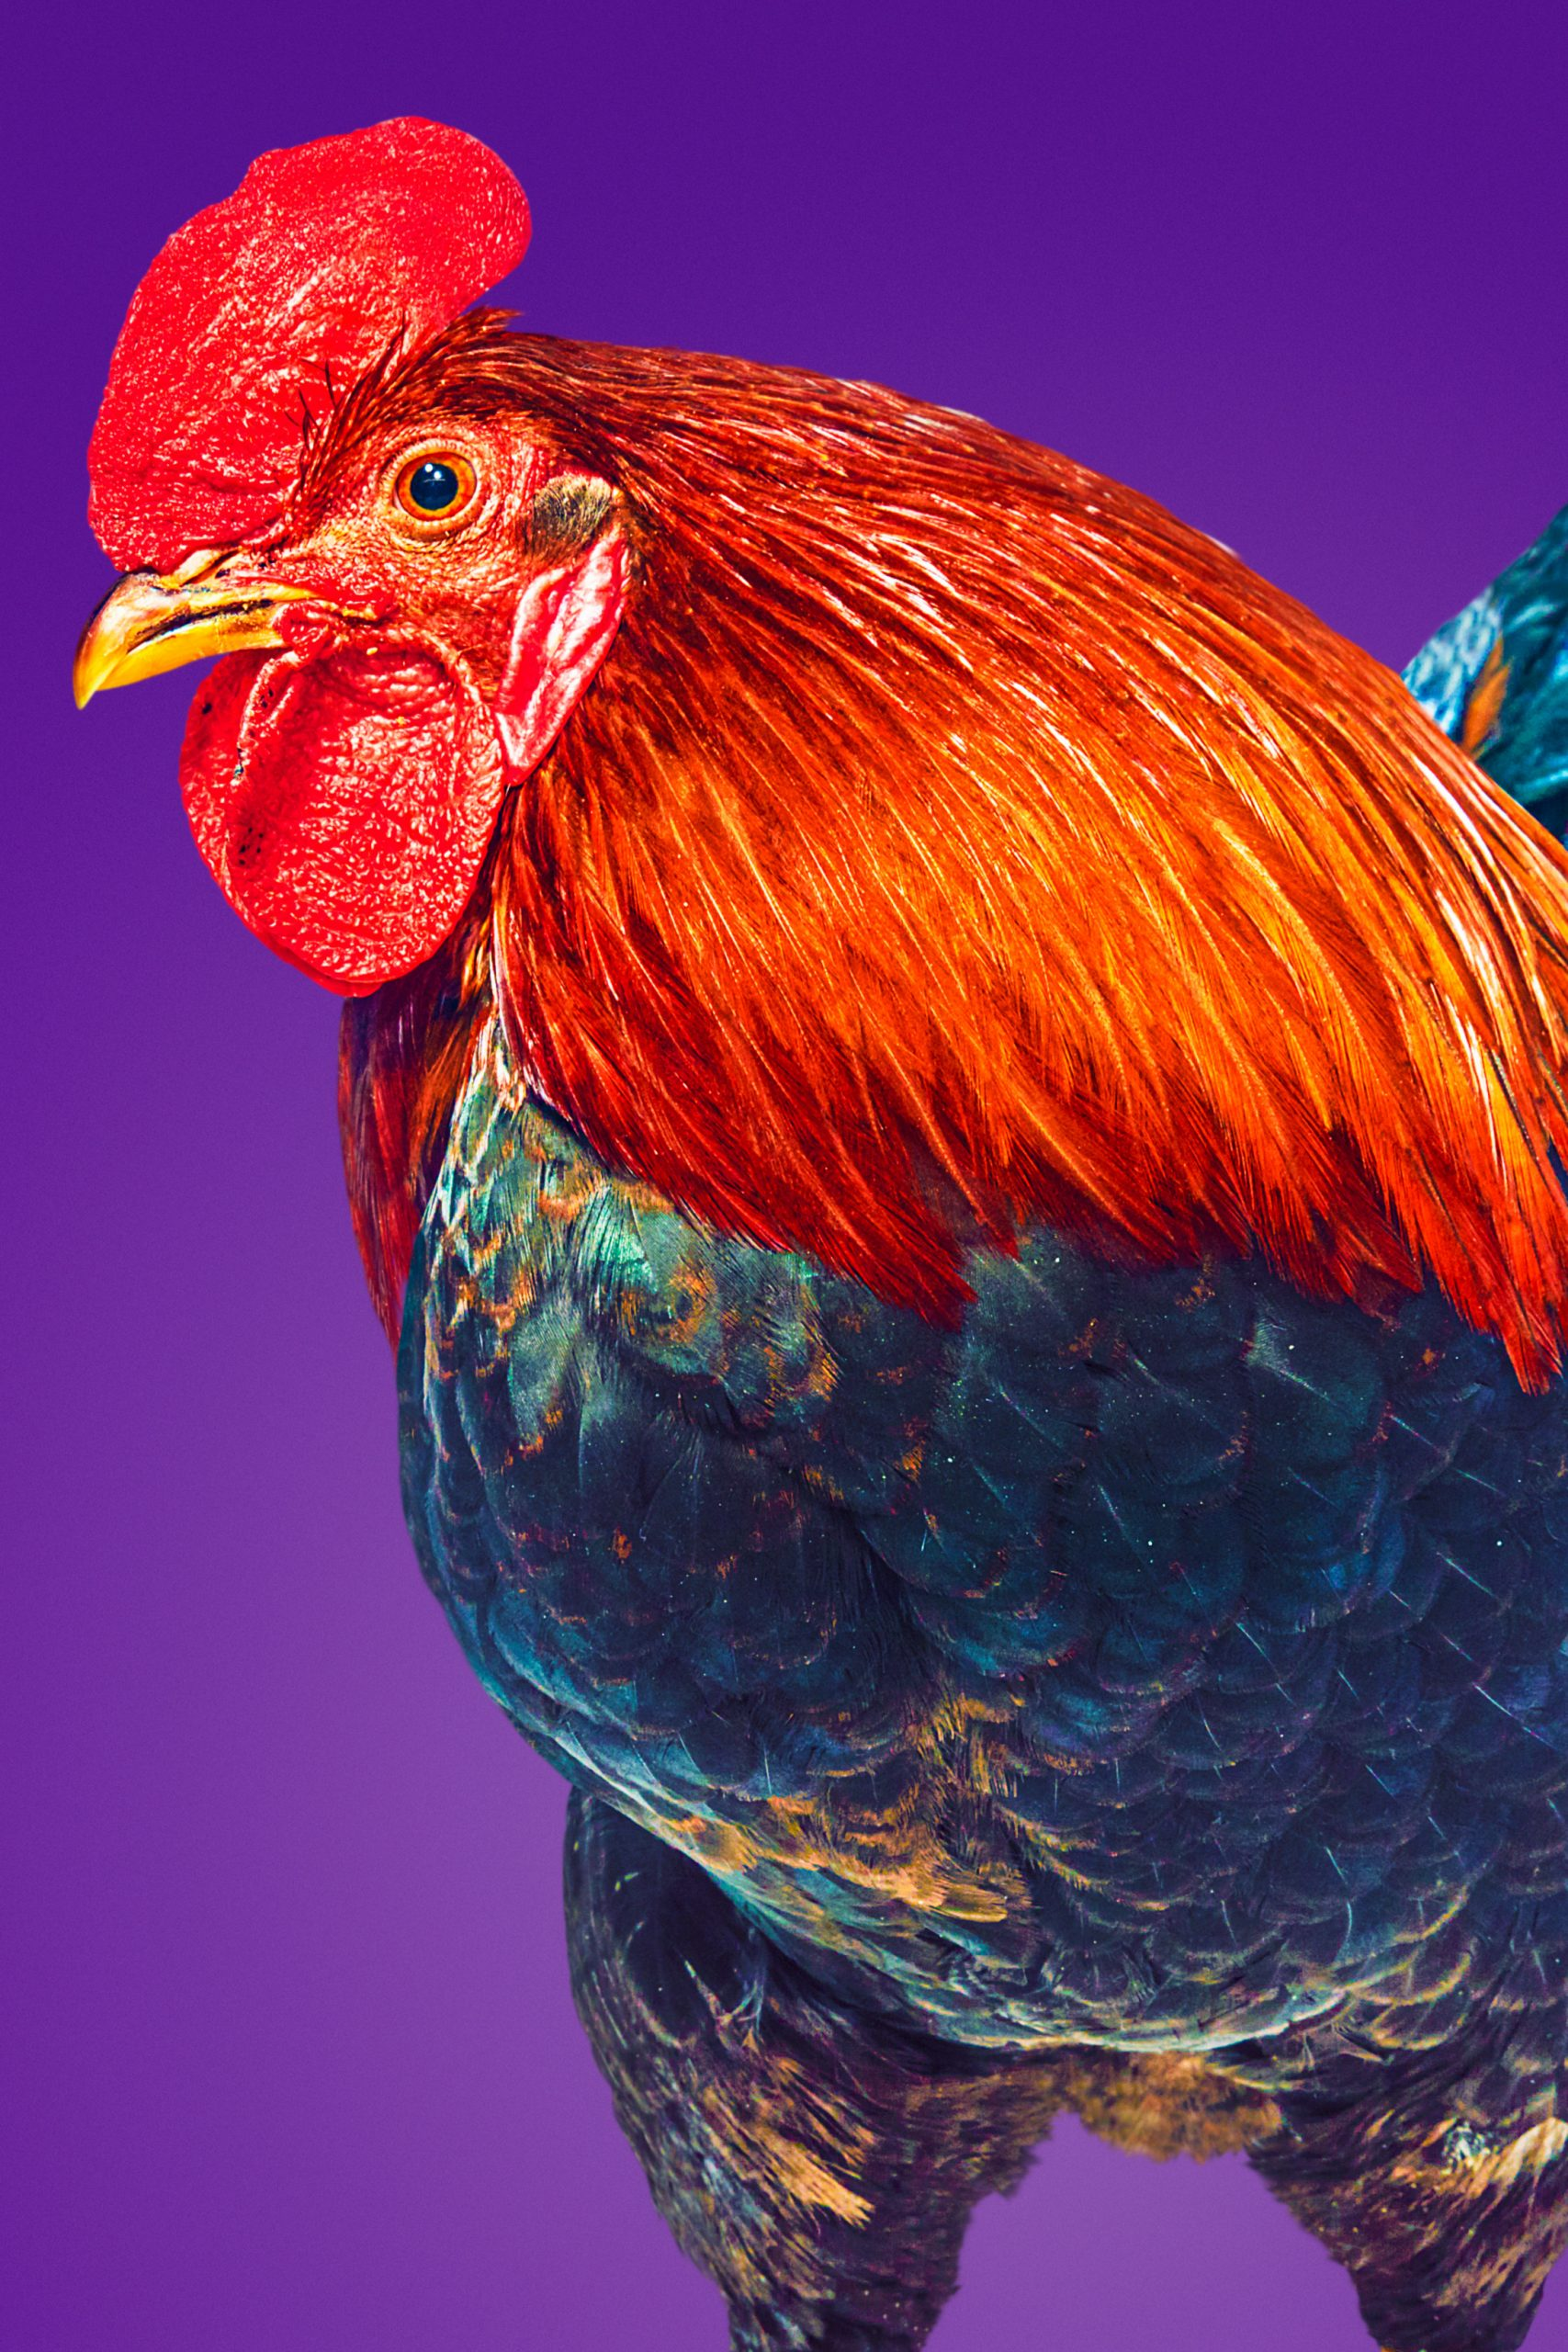 Colourful rooster against purple backdrop